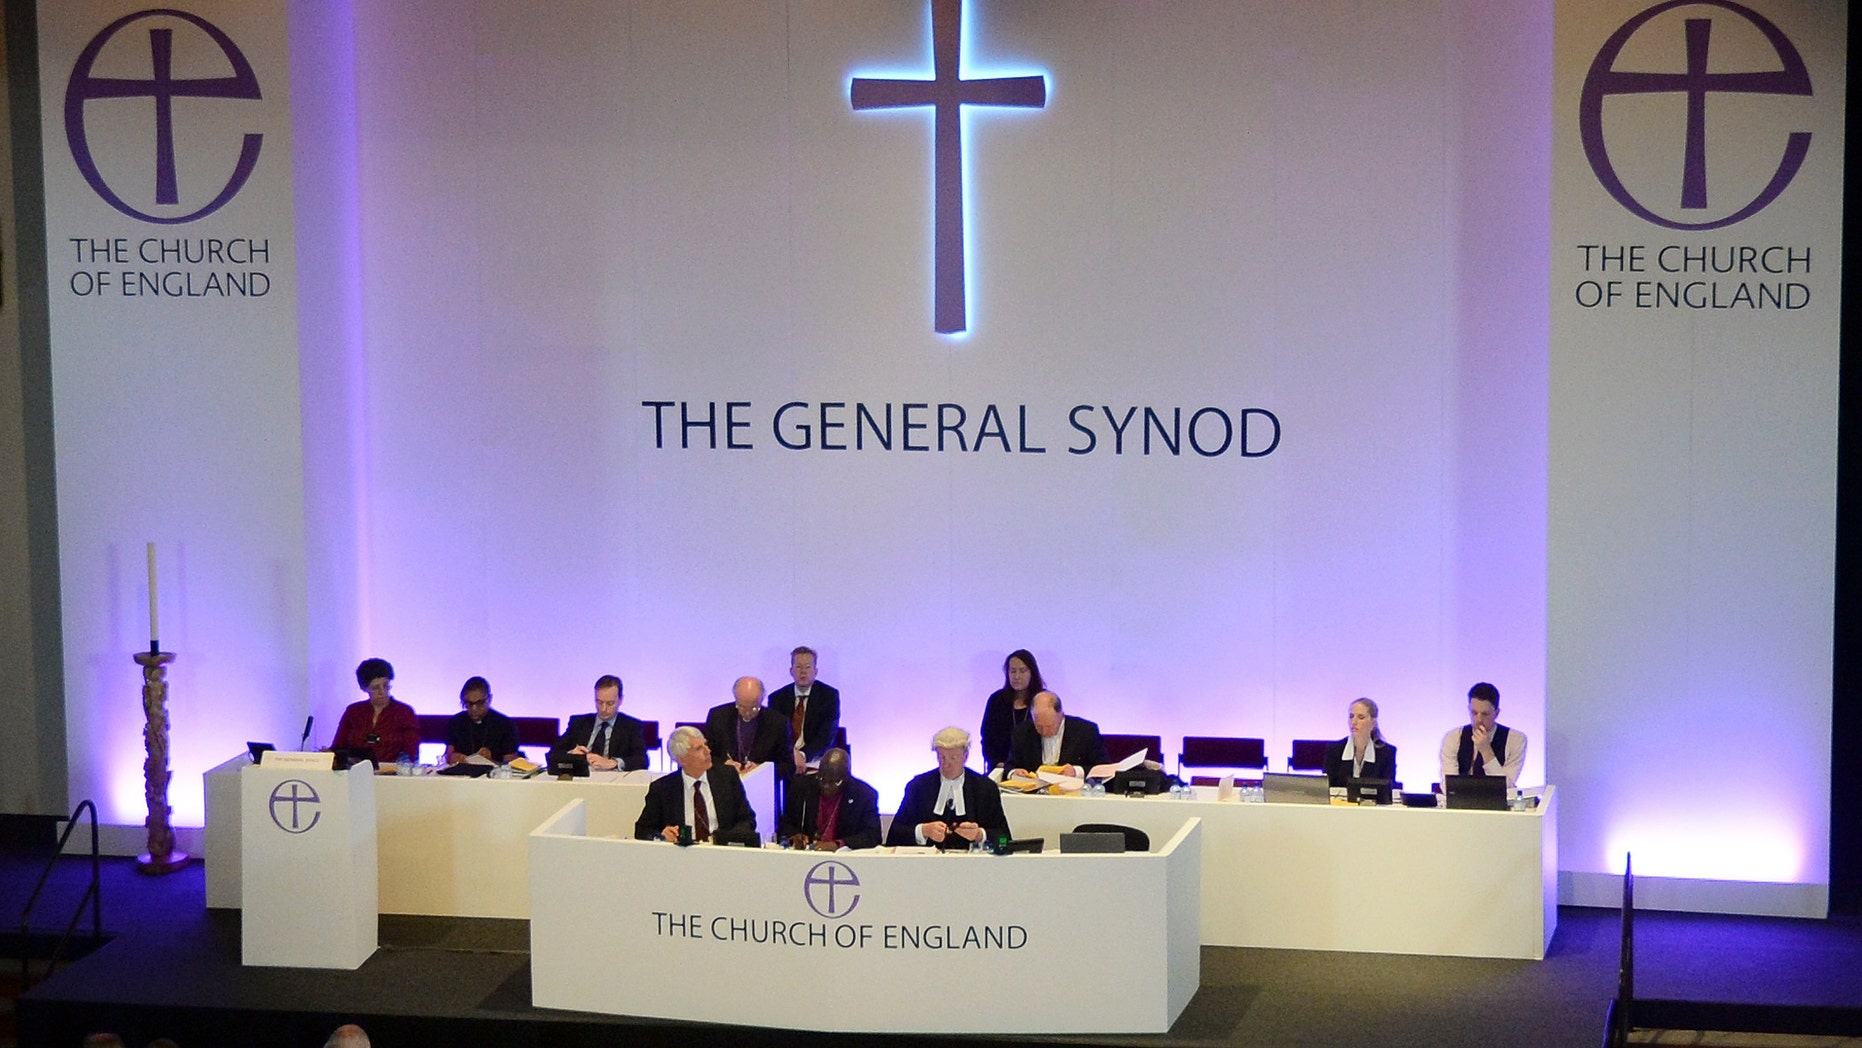 July 14, 2014 - Members of the Church of England's Synod attend the session to vote on the consecration of women bishops, in York. REUTERS